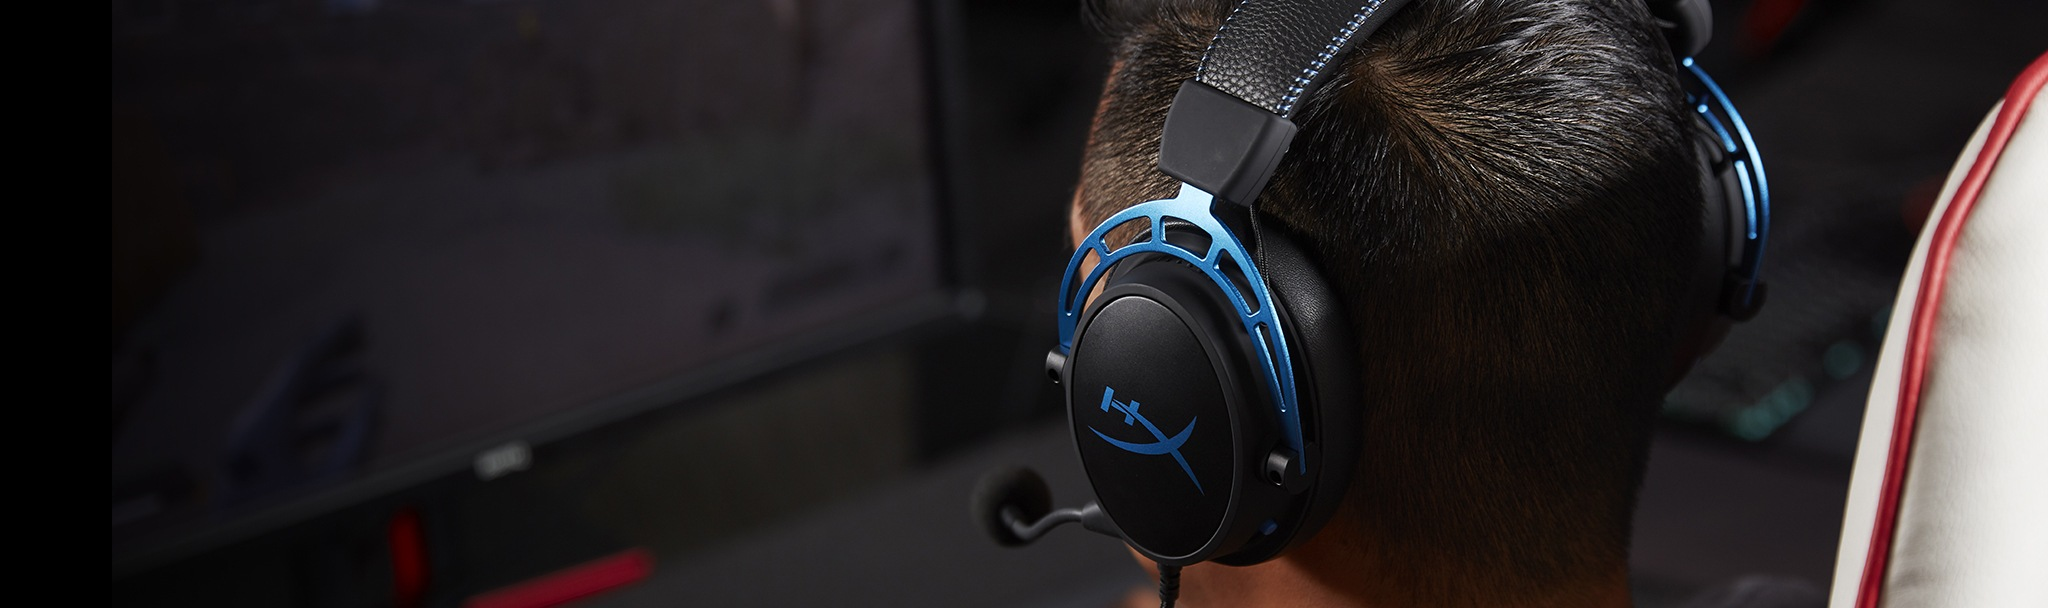 Custom-tuned HyperX 7.1. surround sound